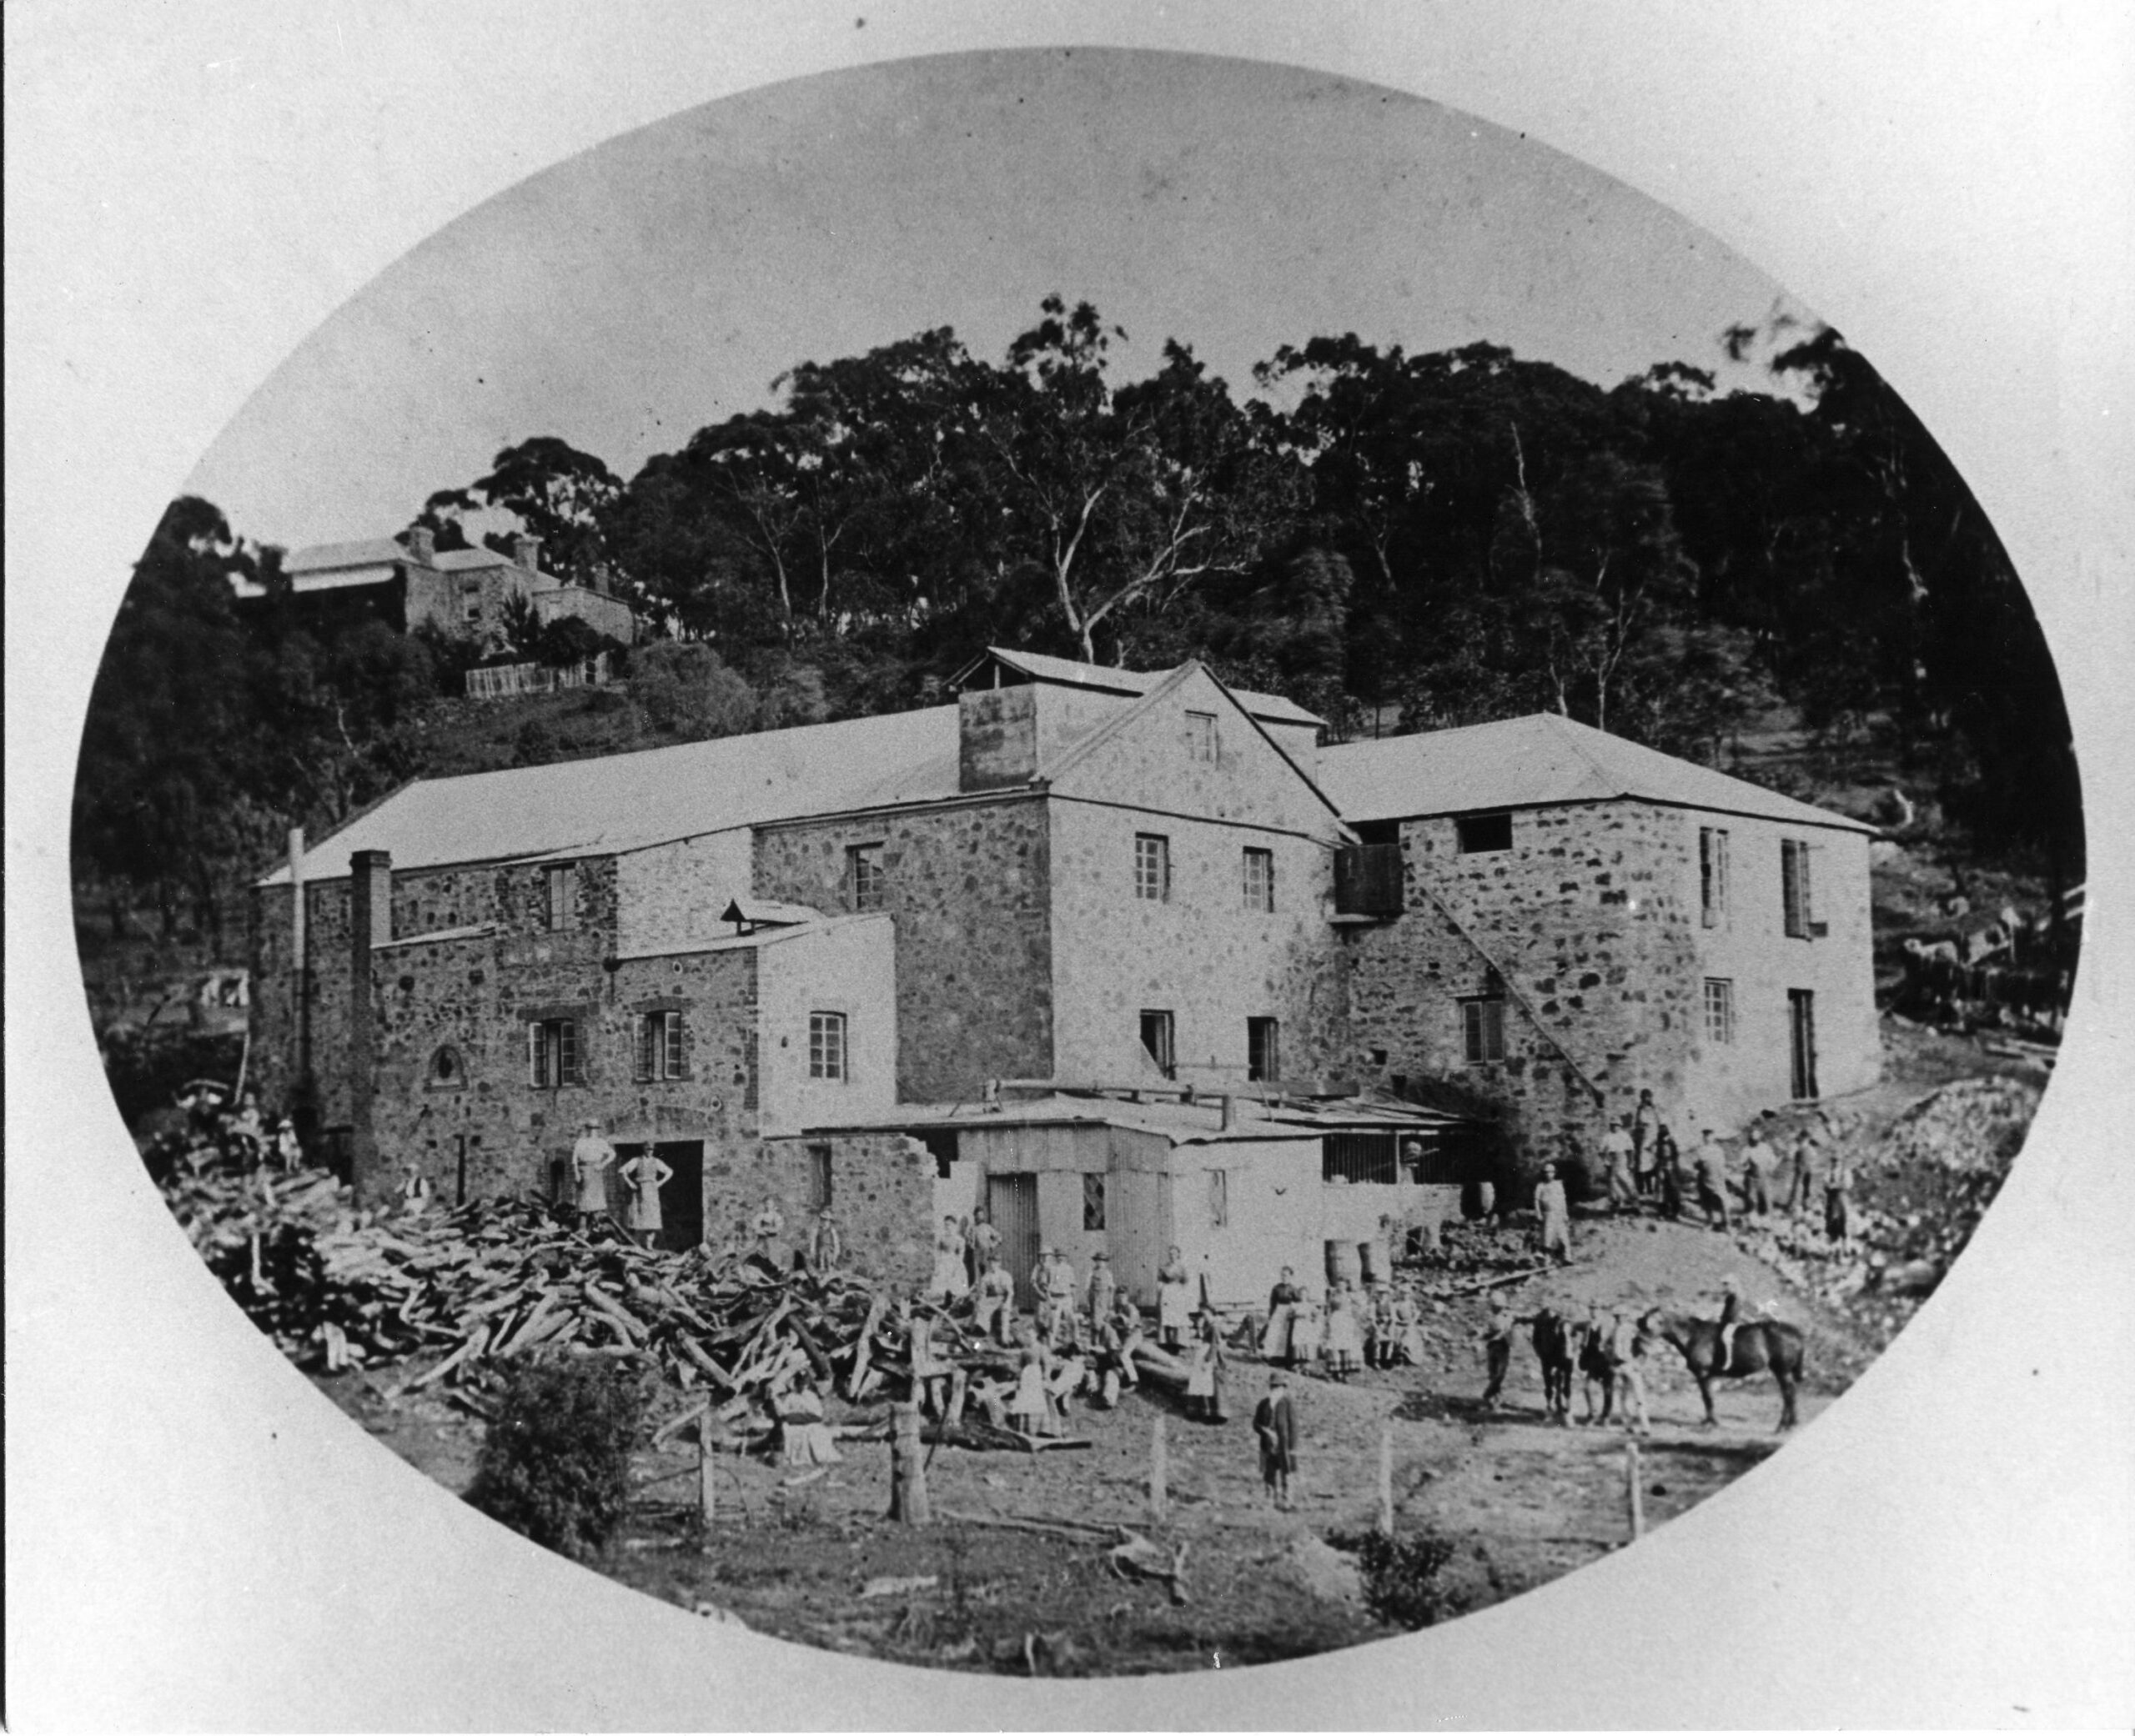 NEW BOOK out soon! The Biscuit Factory: Hidden history in Coromandel Valley